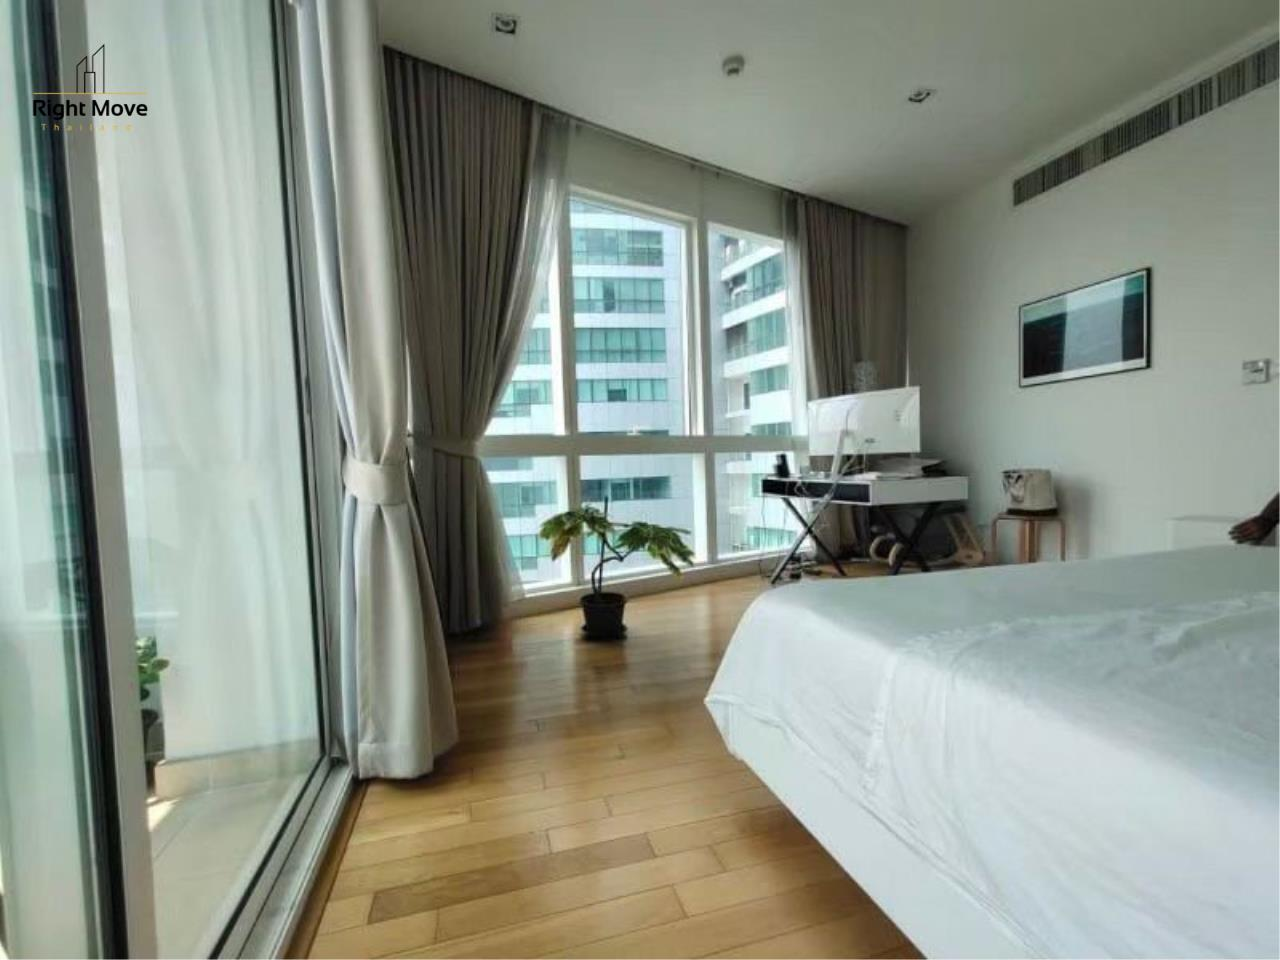 Right Move Thailand Agency's CA4023 Millennium Residence For Rent 120,000 THB -  3 Bedrooms - 193.5 Sqm 6